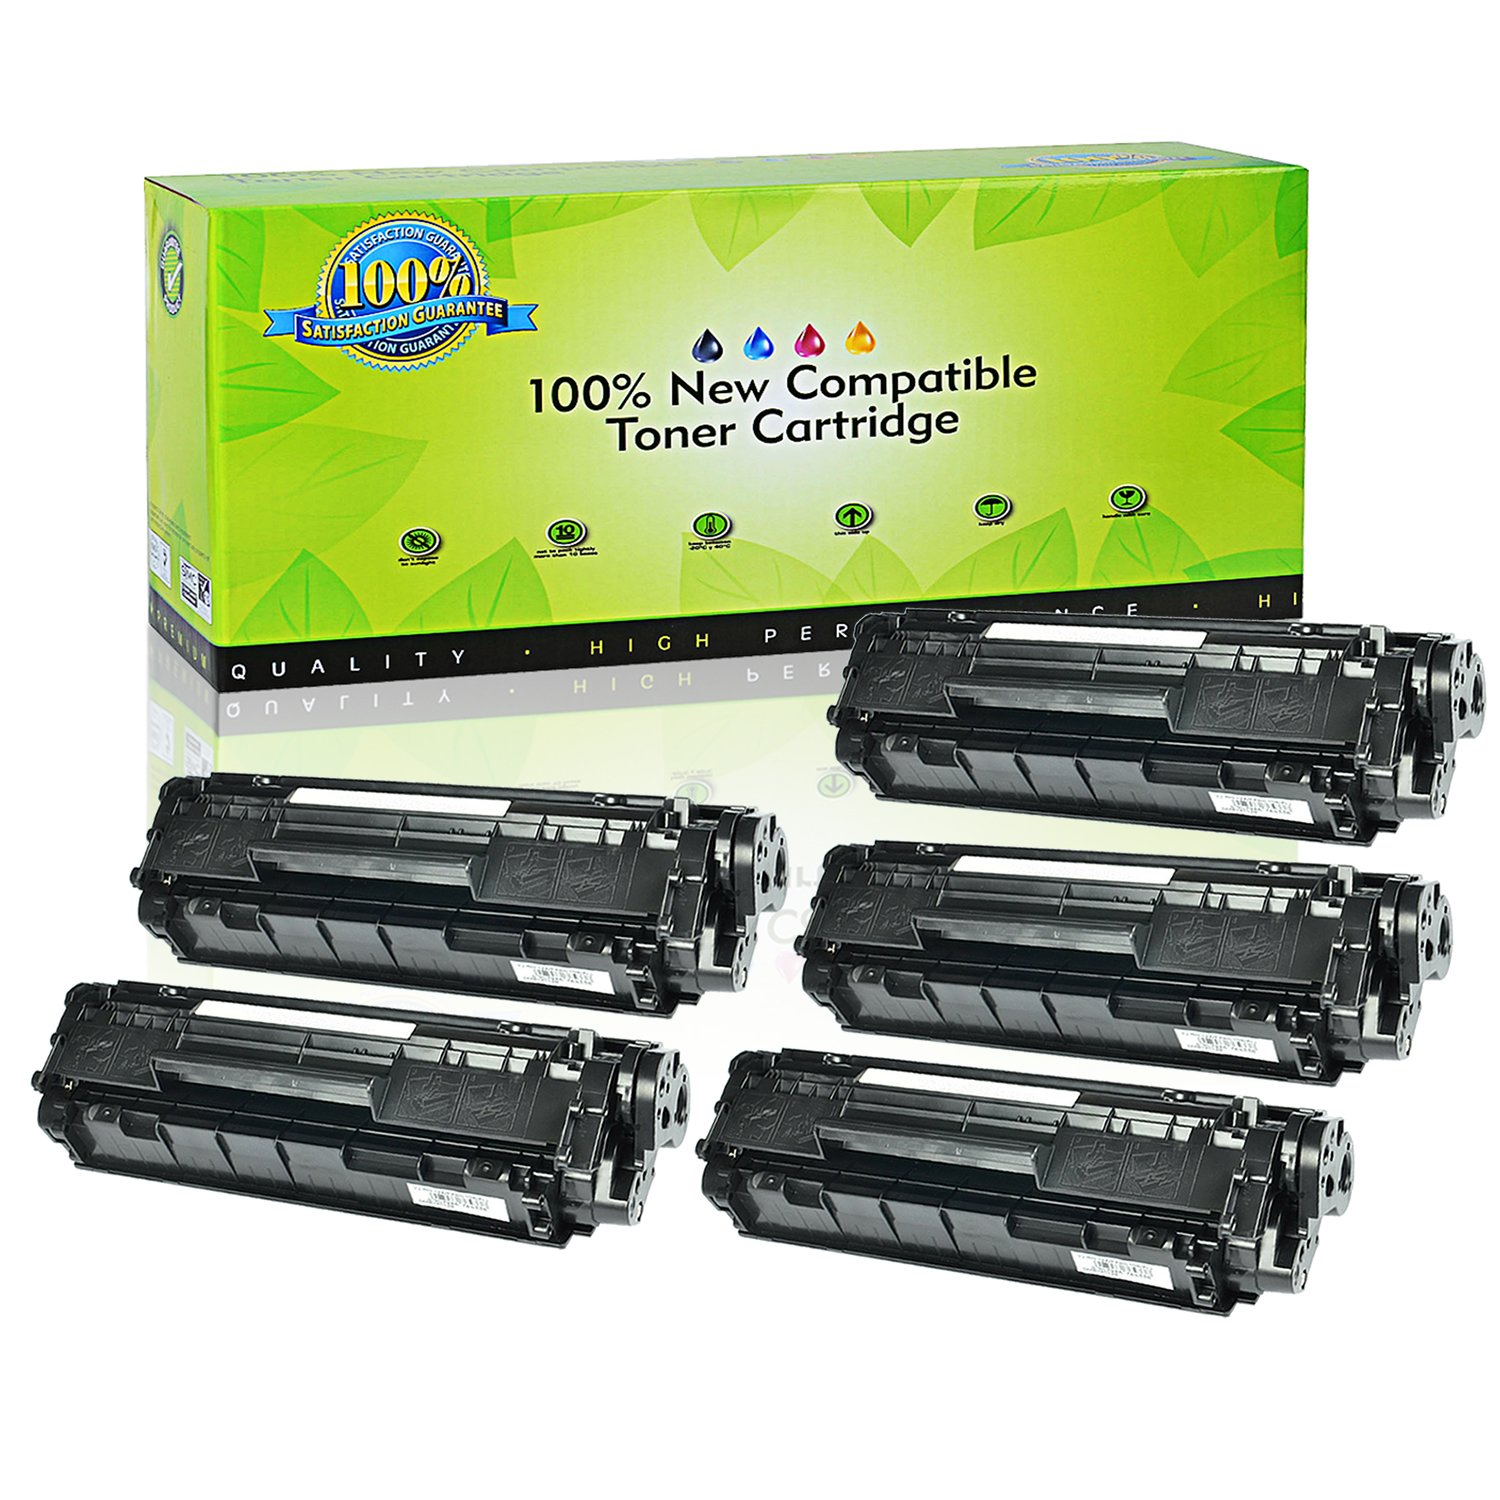 3 Pack Q2612A 12A Toner Cartridge for HP LaserJet 3020 3030 3050 3052 3055 M1319